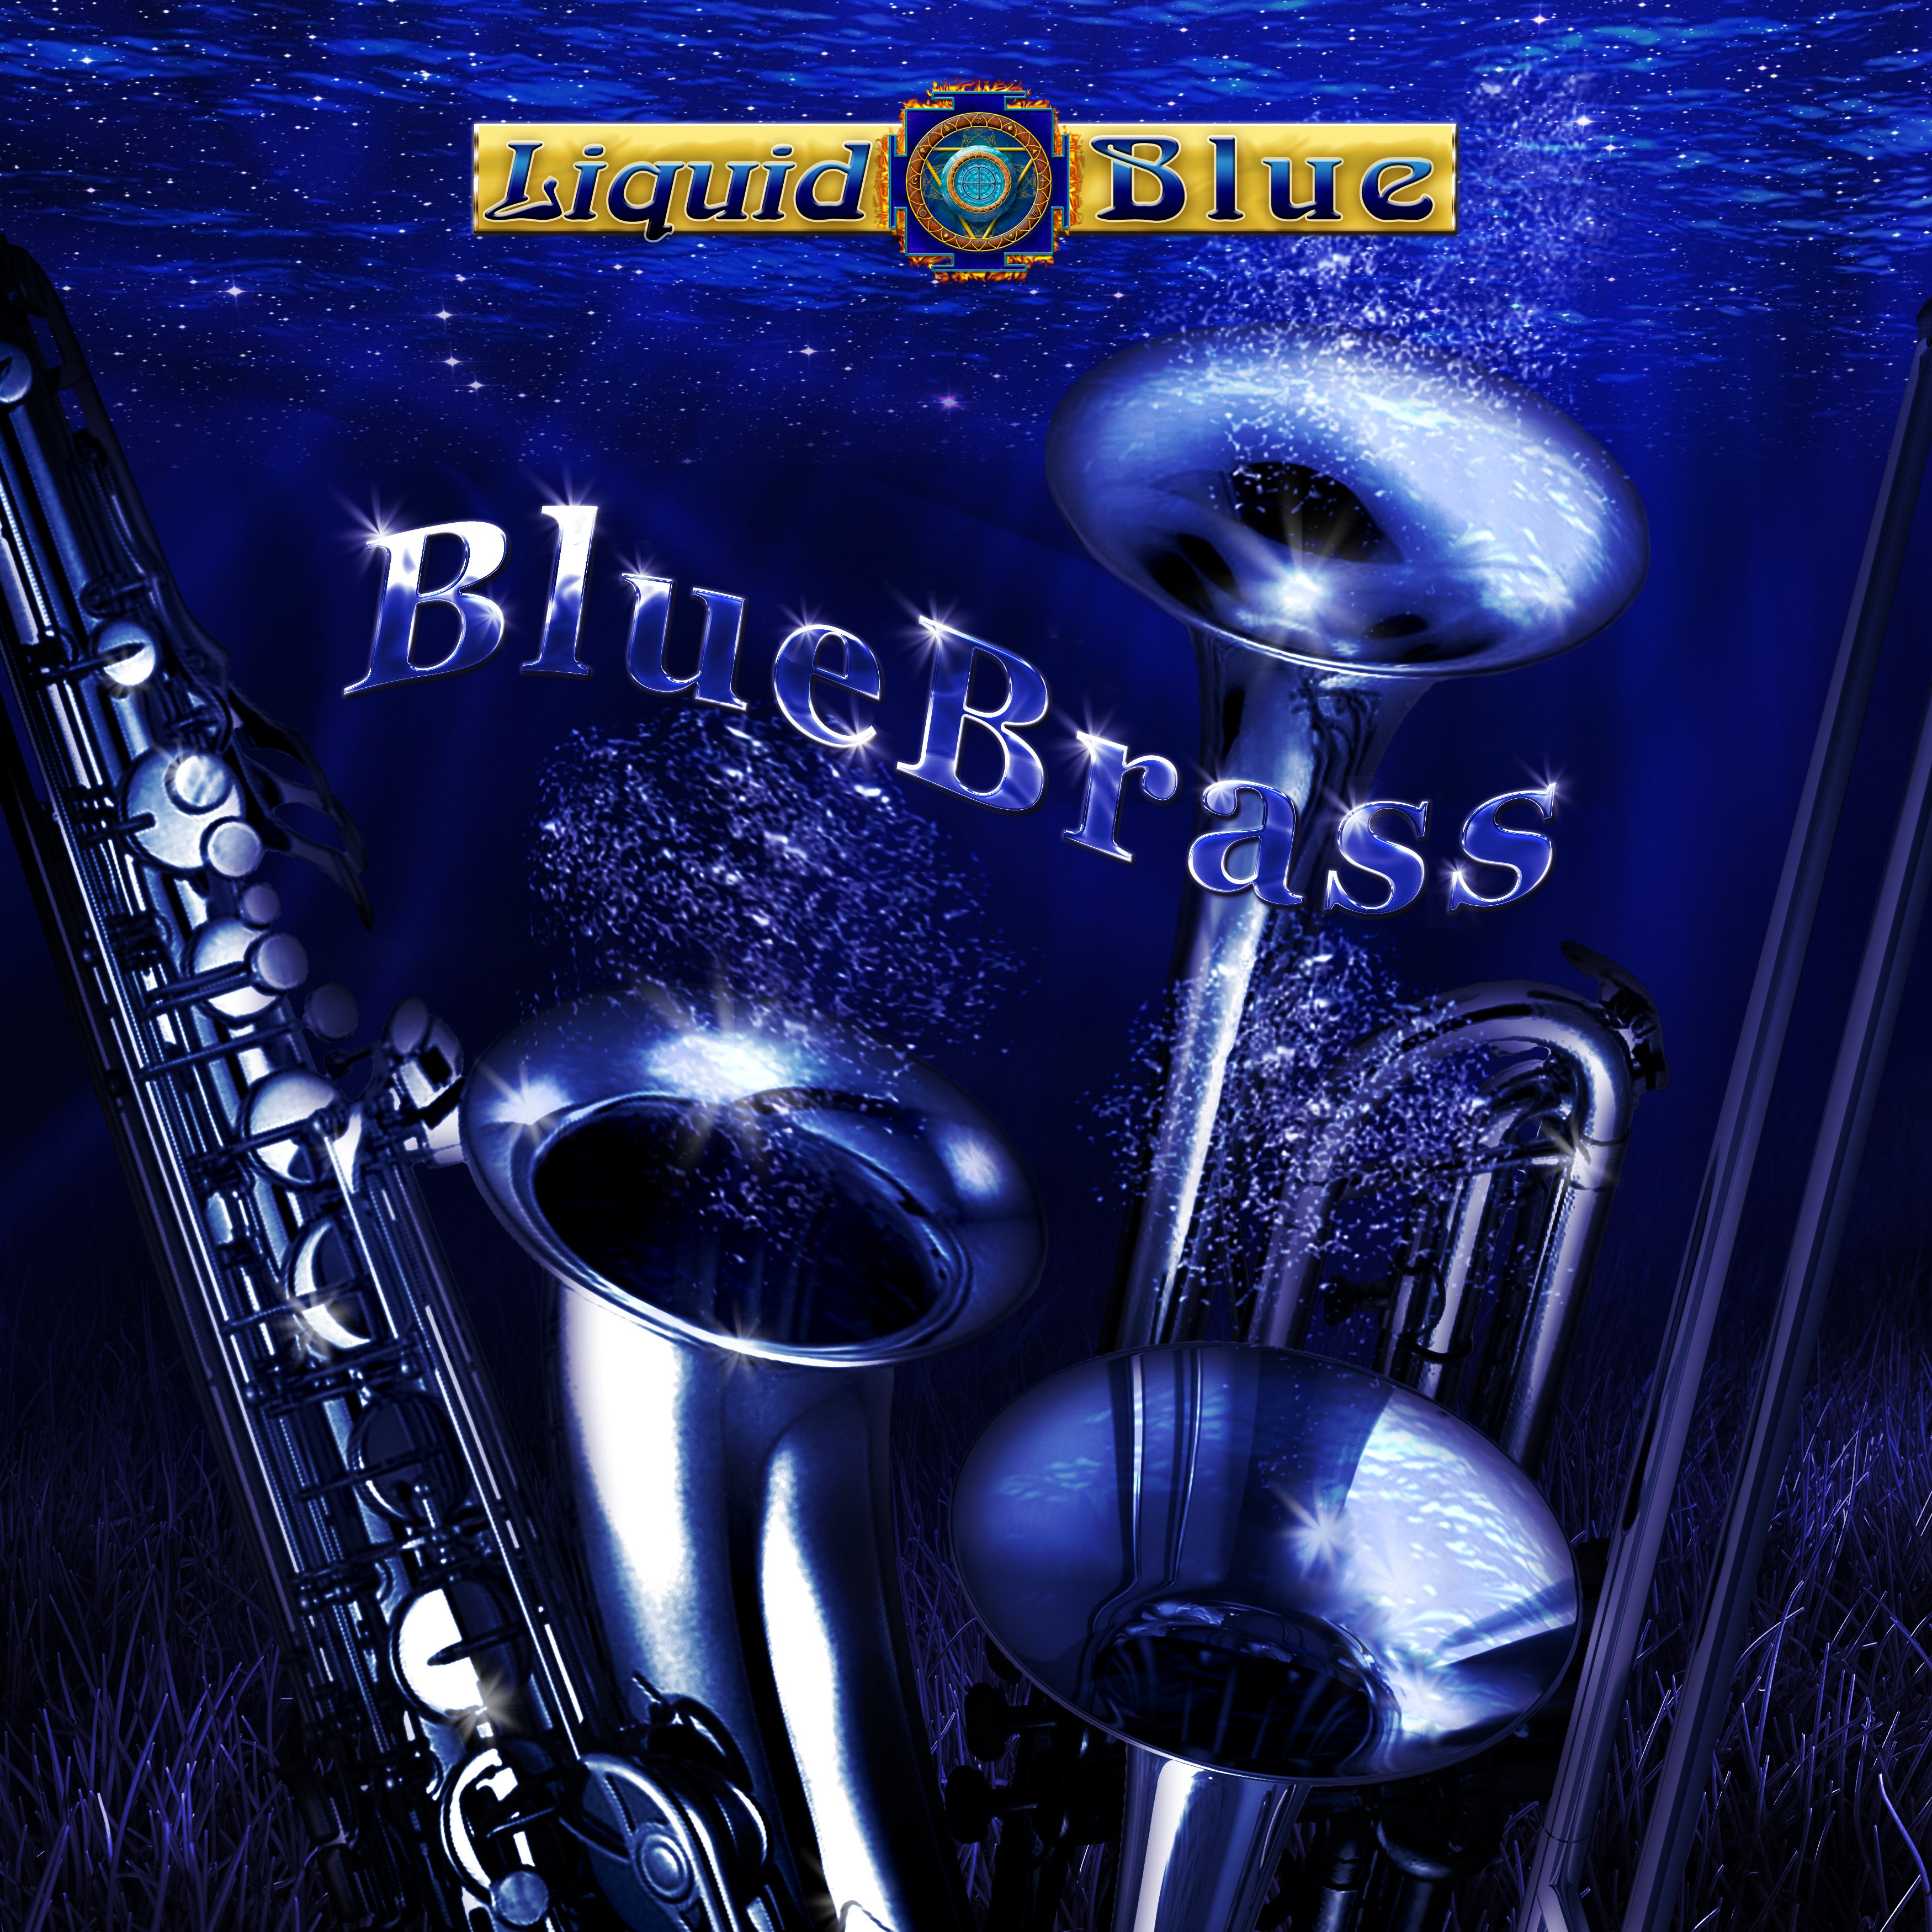 Blue Brass - Liquid Blue